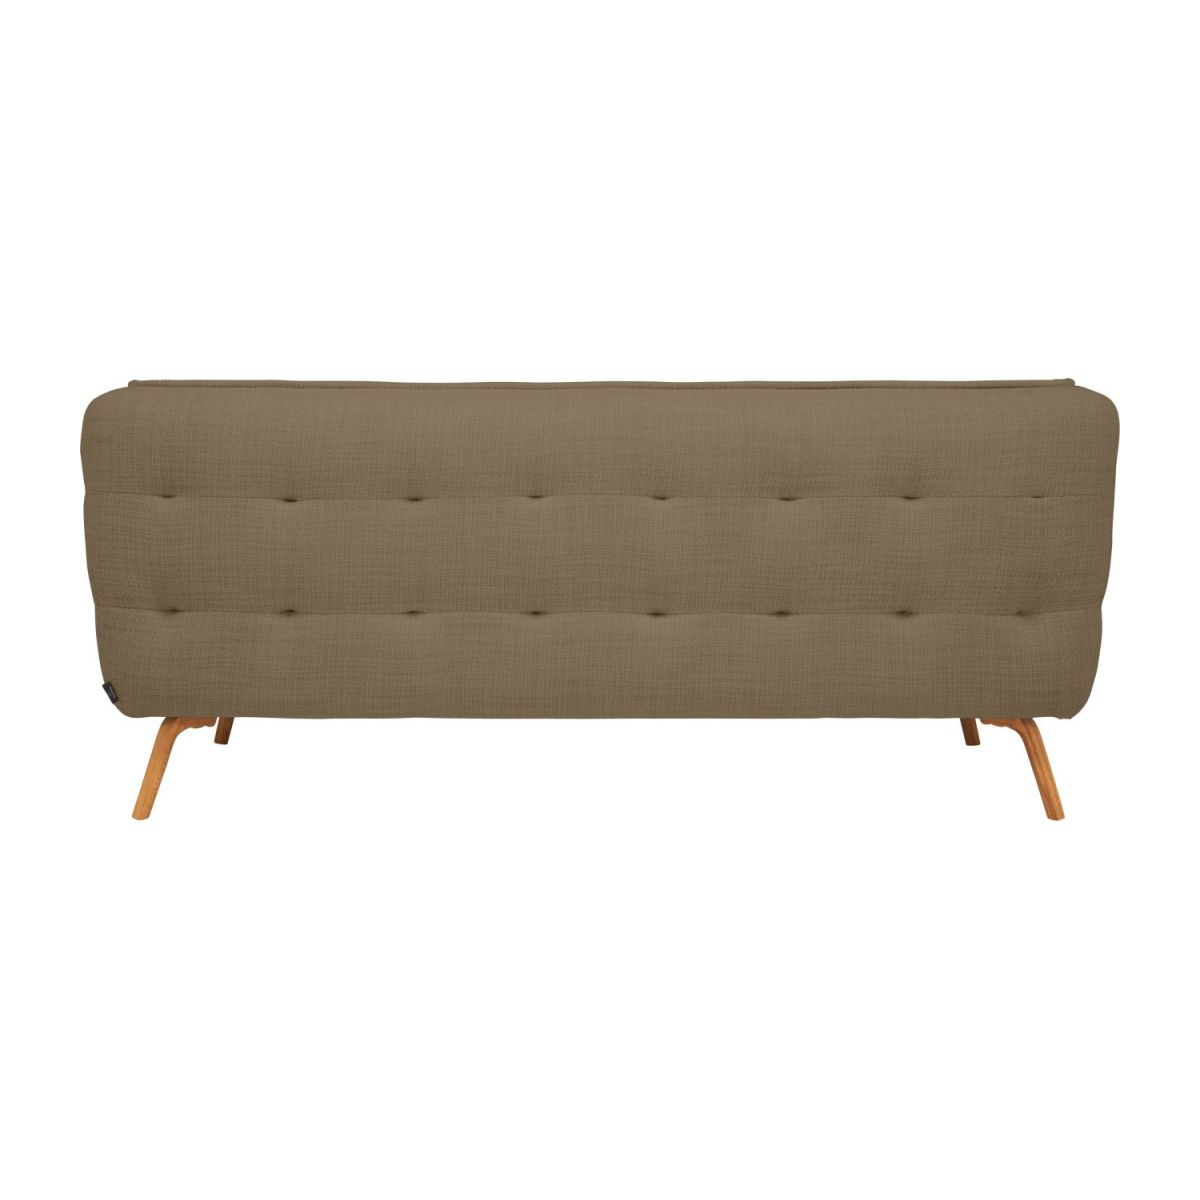 2 seater sofa in Fasoli fabric, jatoba brown and oak legs n°4